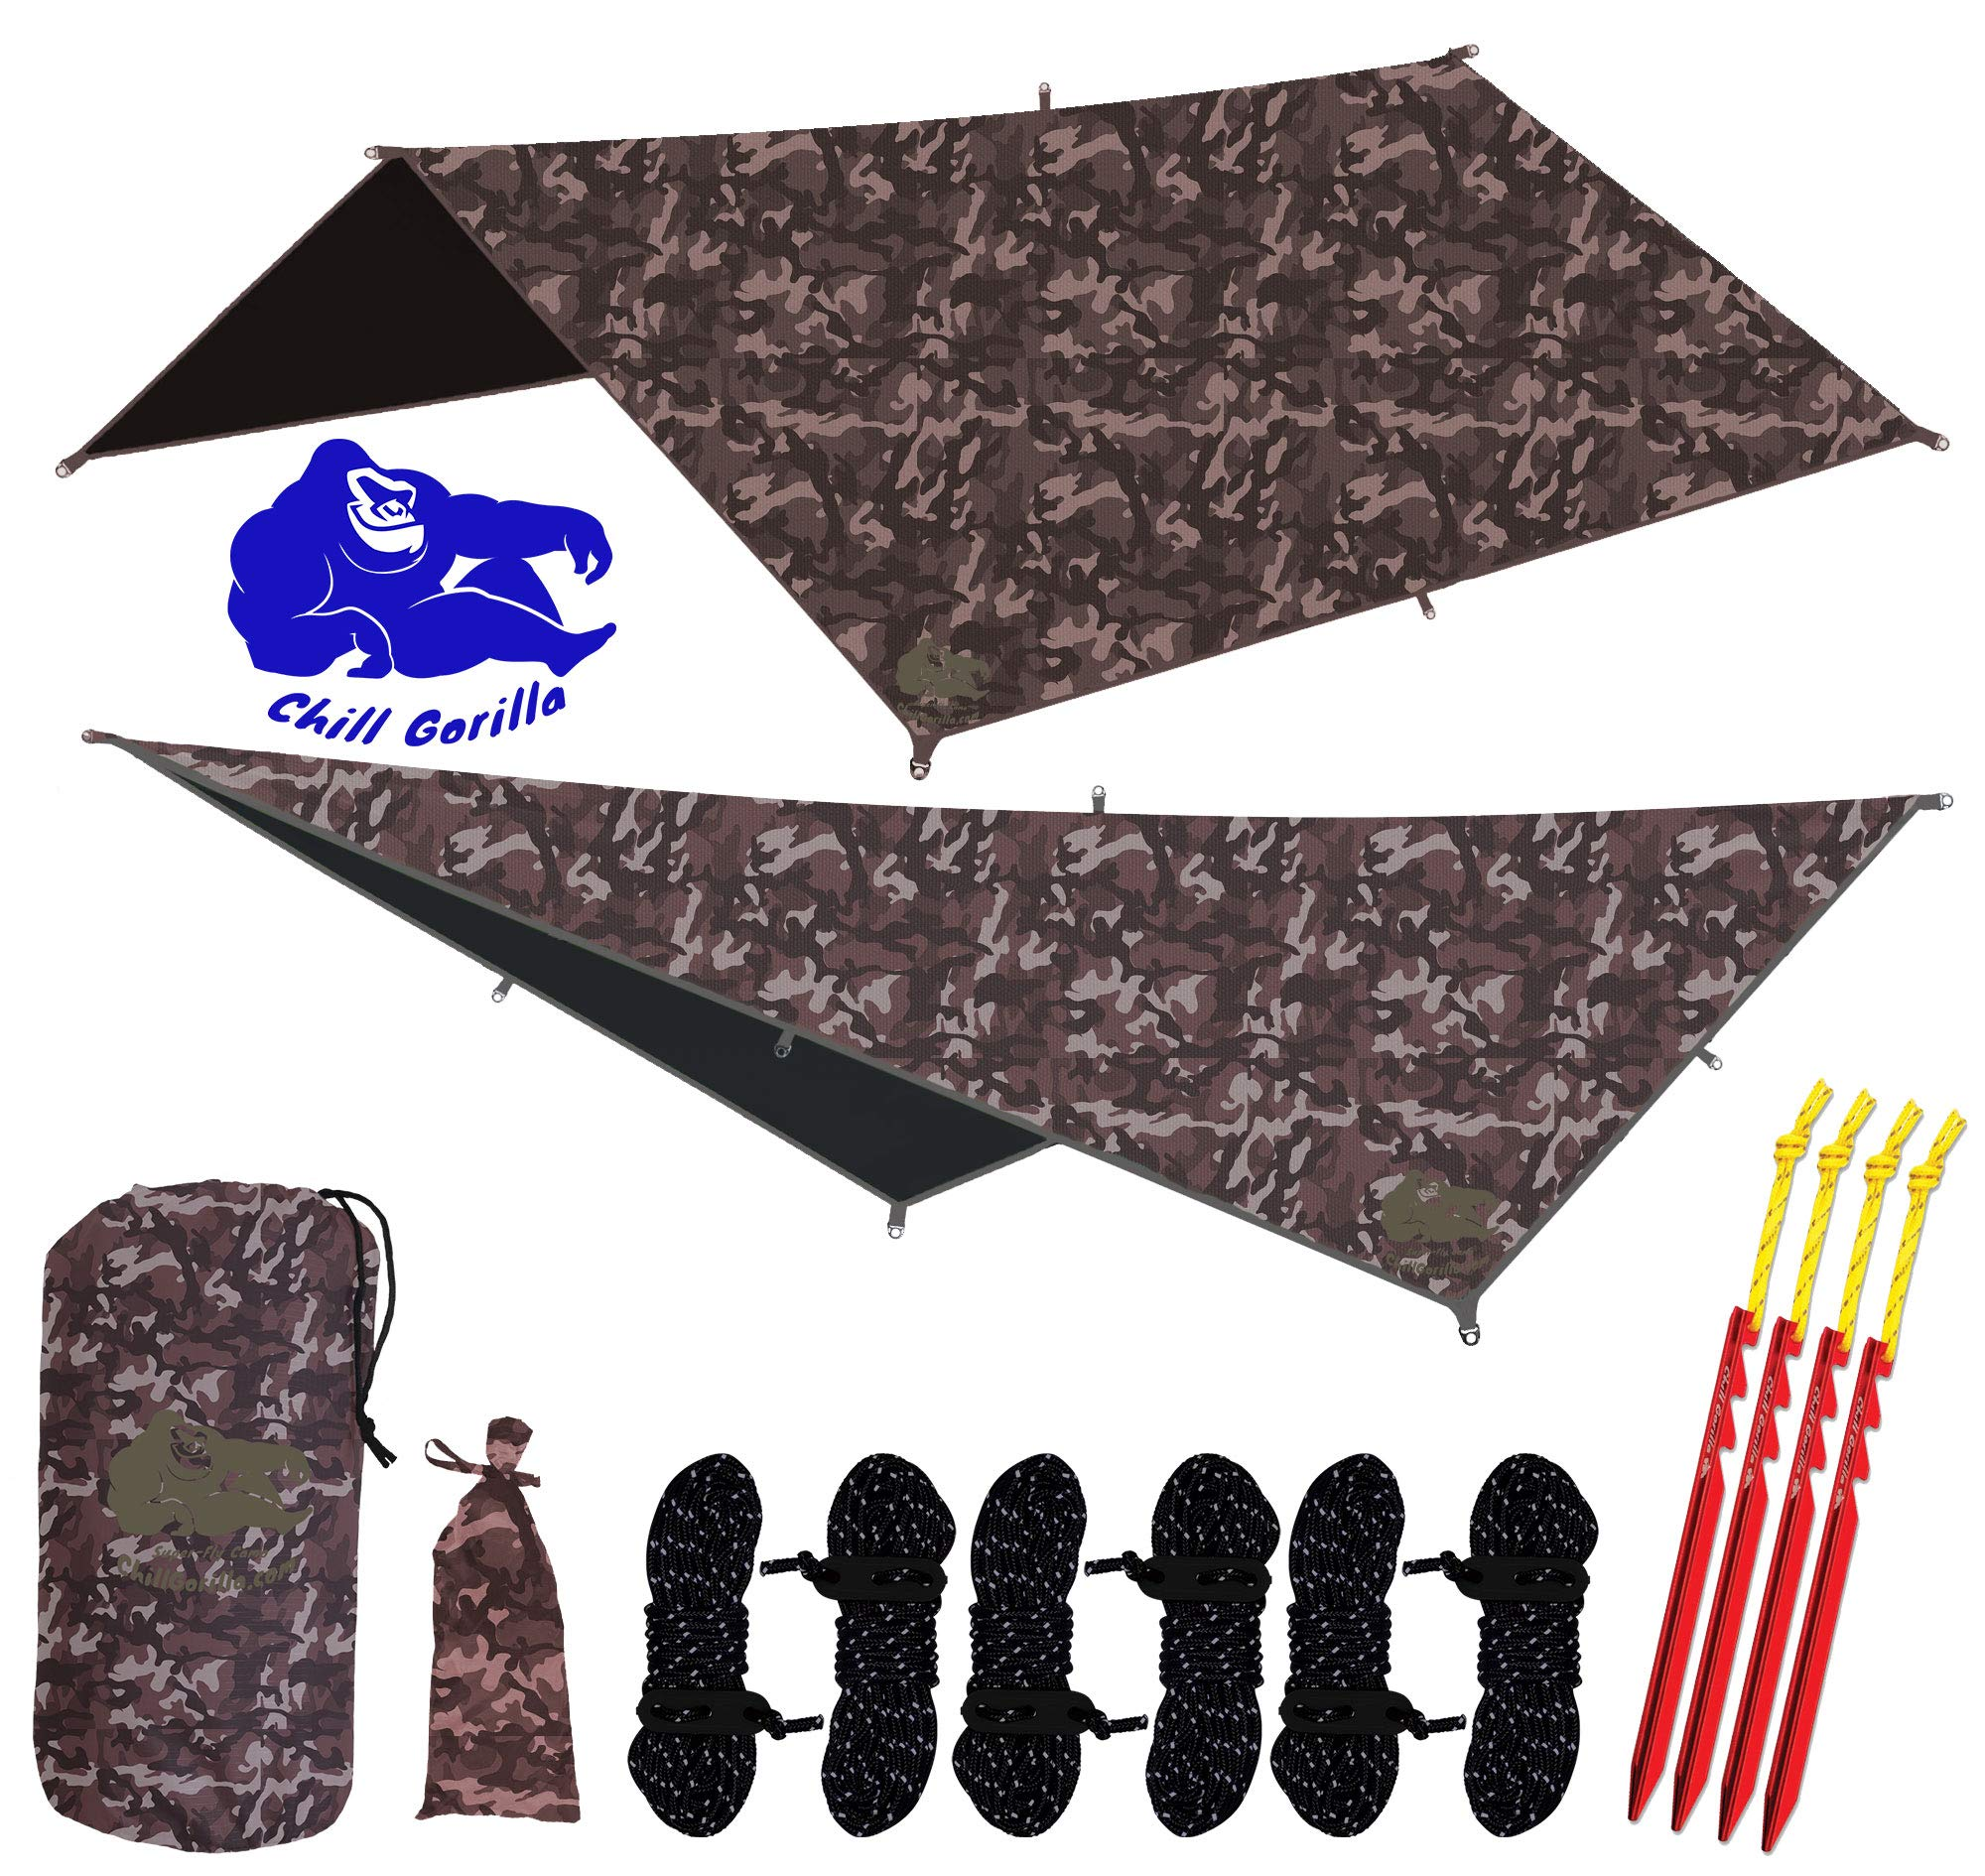 Chill Gorilla 10x10 Hammock Rain Fly Camping Tarp. Ripstop Nylon. 170'' Centerline. Stakes, Ropes & Tensioners Included. Camping Gear & Accessories. Perfect Hammock Tent. CAMO by Chill Gorilla